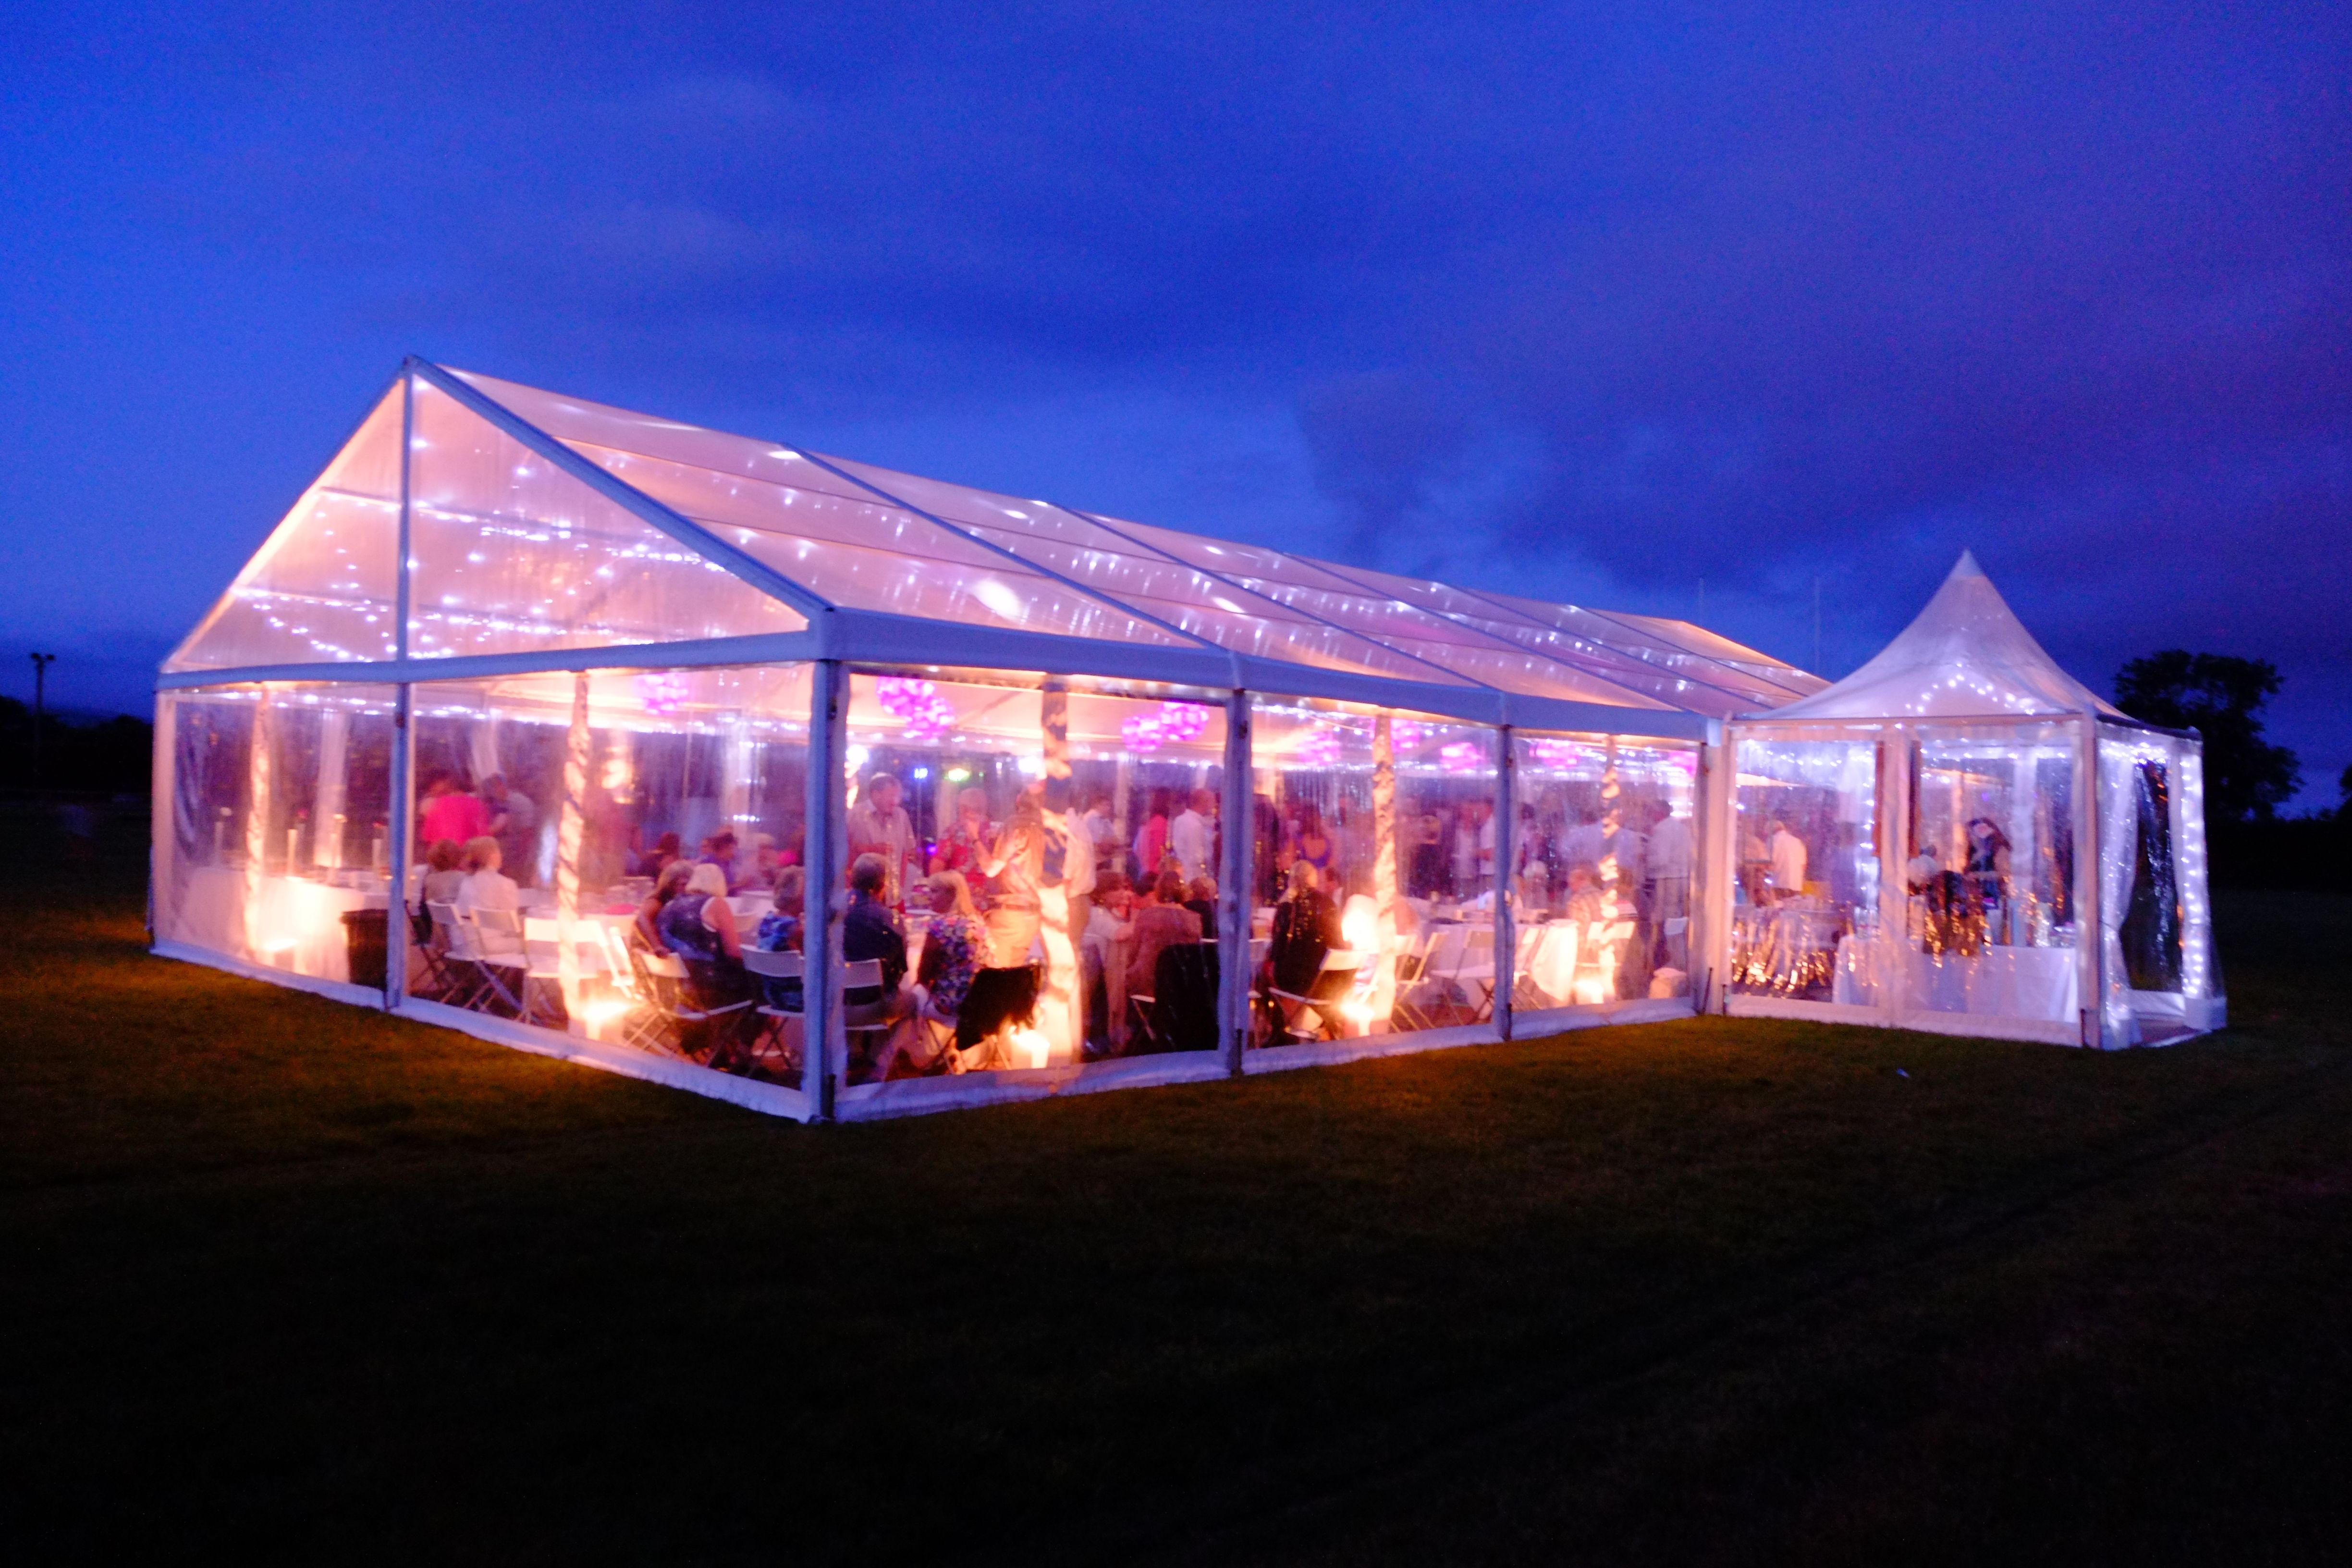 Party Marquee Fully Transparent With Lighting Uplighters And Twinkly Lights From The Transparent Marquee C Summer Garden Party Event Lighting Marquee Lights